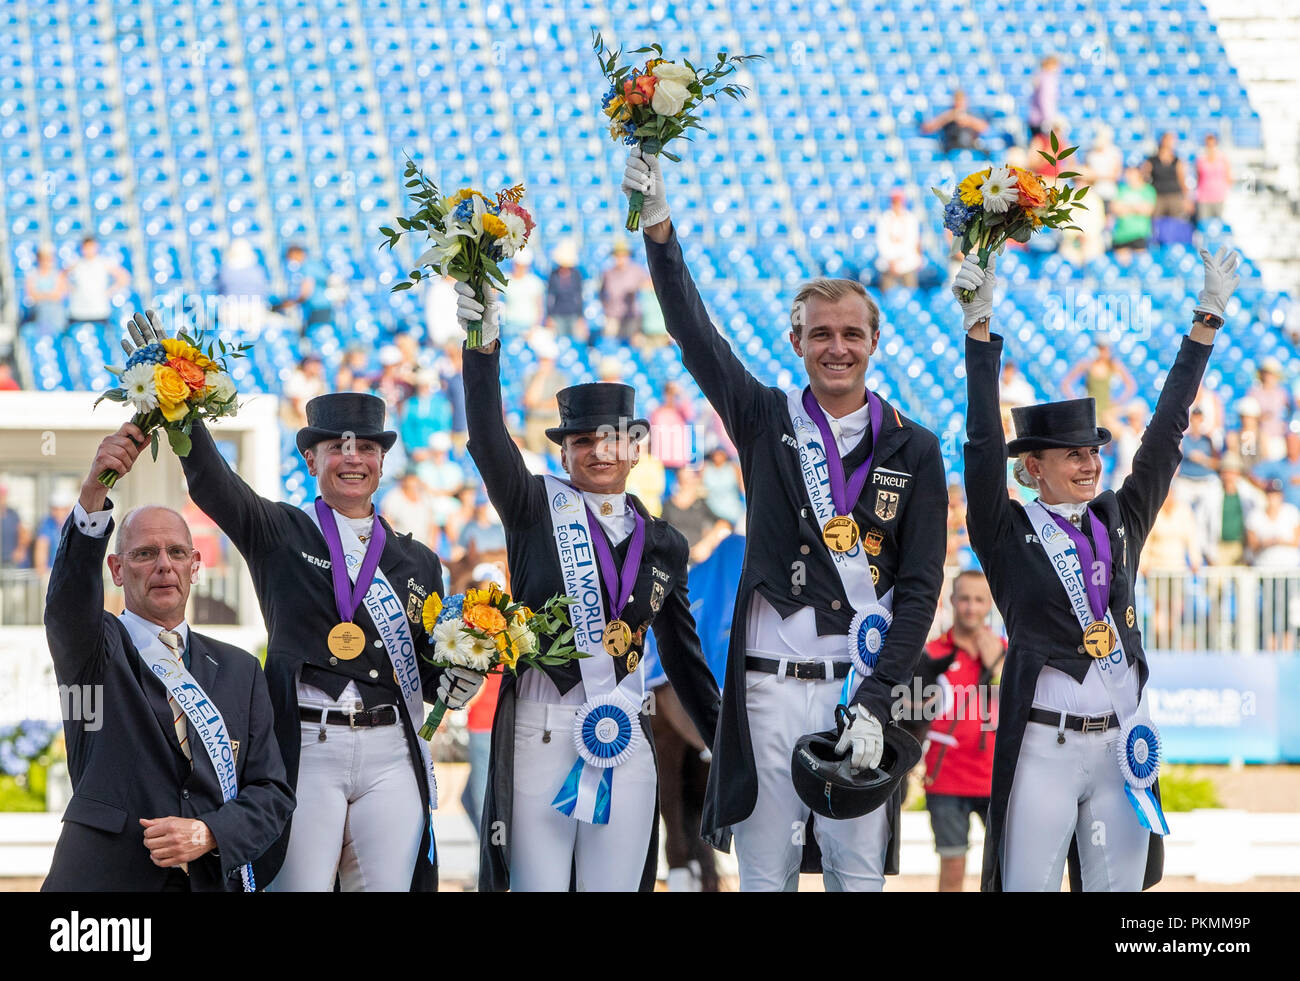 Tryon, USA. 13th Sep, 2018. Equestrian, FEI World Equestrian Game 2018, Grand Prix de Dressage: The dressage team from Germany, consisting of team head Klaus Roeser (left to right), Isabell Werth, Dorothee Schneider, Soenke Rothenberger and Jessica von Bredow-Werndl, standing on the podium and celebrating their victory. Credit: Stefan Lafrentz/dpa/Alamy Live News - Stock Image